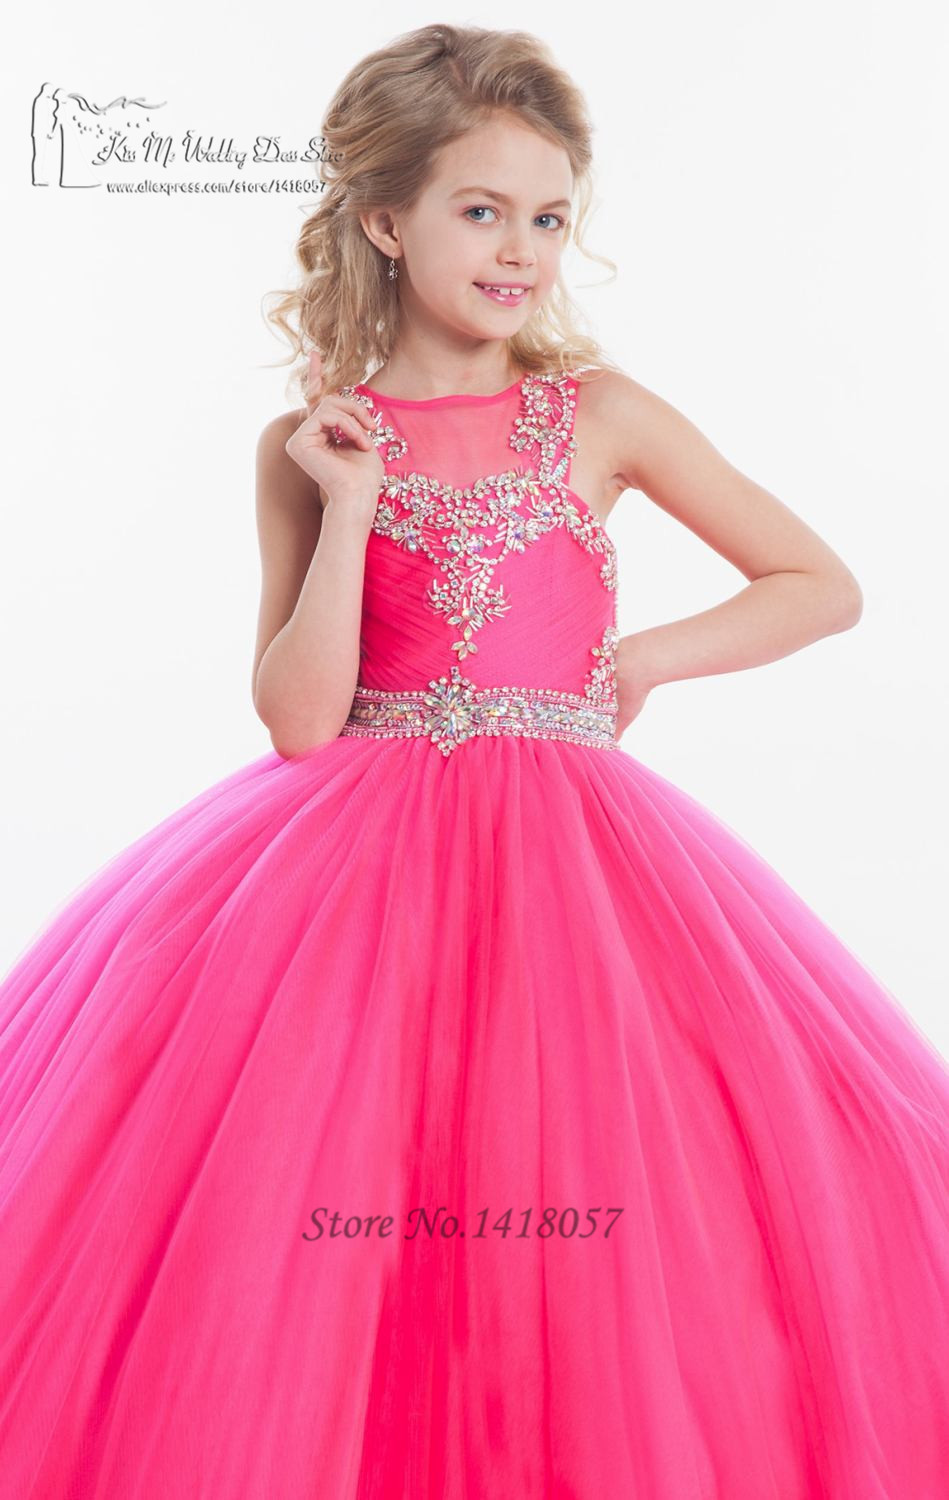 Fushcia Turquoise Girls Pageant Dresses for Weddings Junior ...